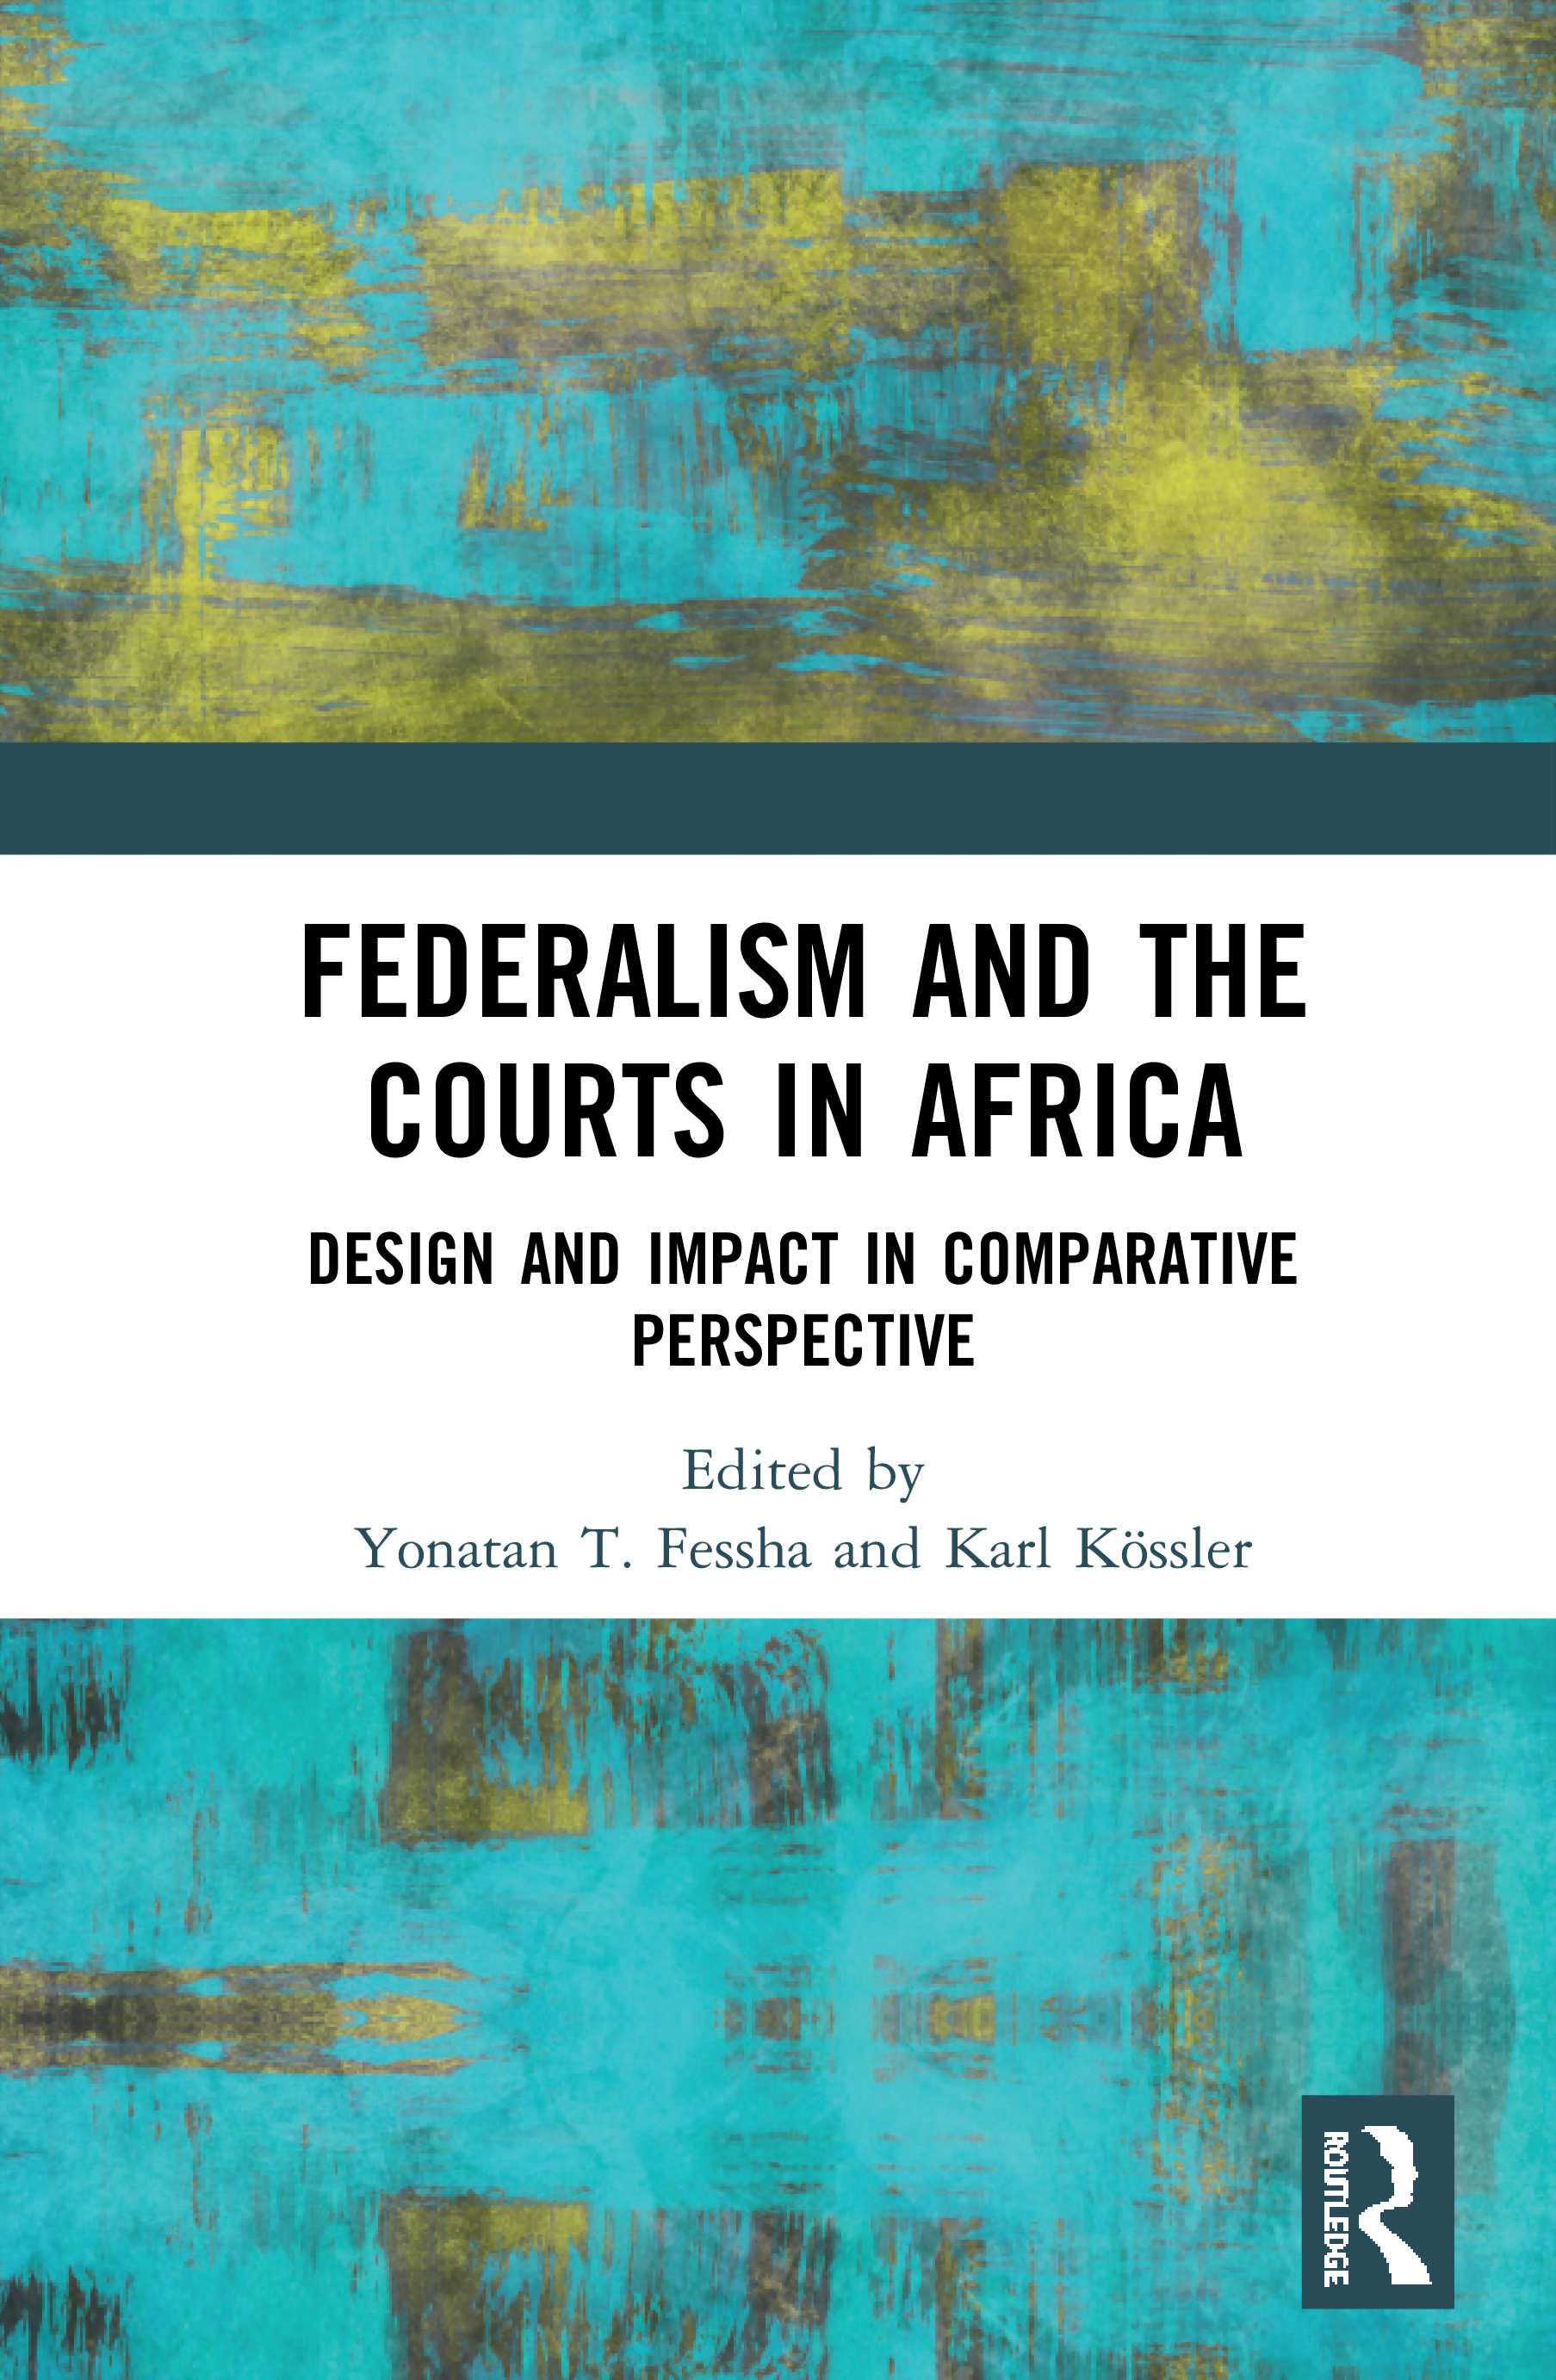 Federalism and the Courts in Africa: Design and Impact in Comparative Perspective book cover